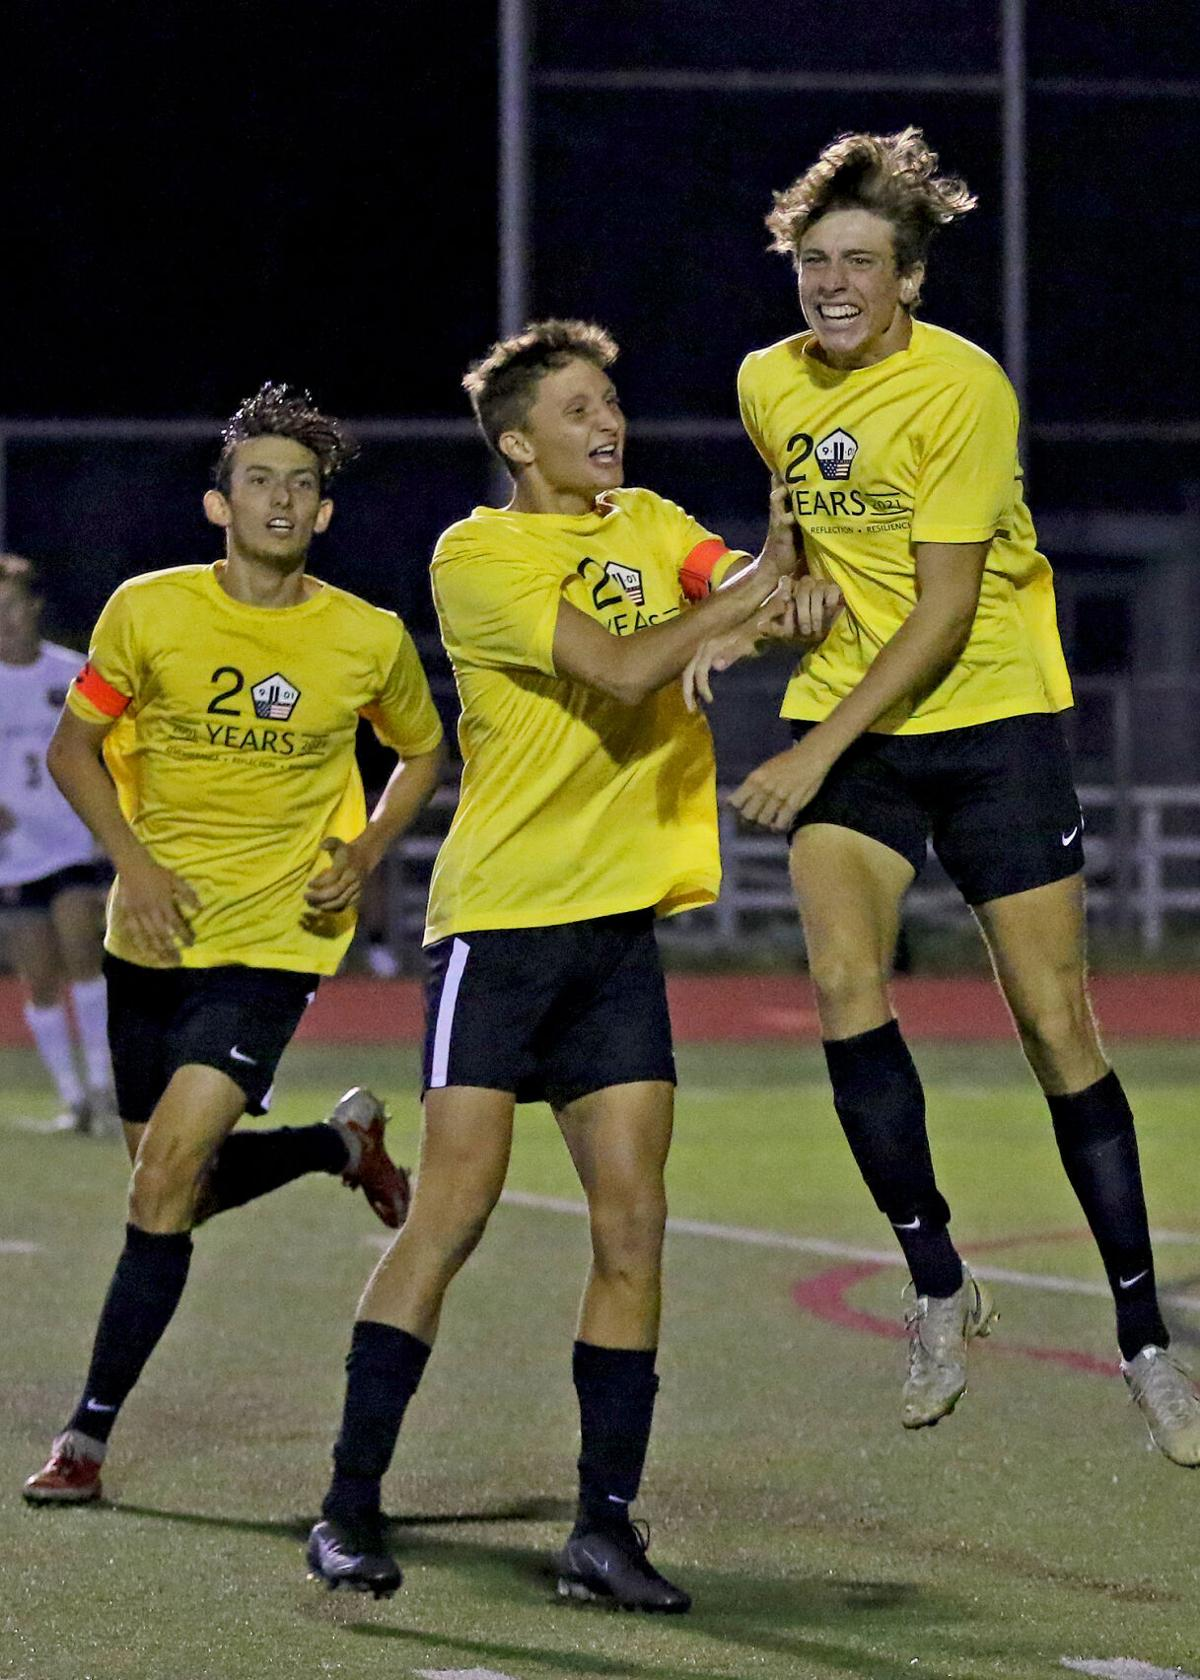 Stonington's Ryan Turner (right) celebrates after making the first goal of the evening in the 2021 Piver Cup Boys Soccer Tournament final played Saturday evening, September 18, 2021, at Stonington High School in Pawcatuck. Celebrating with him are Bear's teammates William deCastro (left) and Wynn Hammond (center). Stonington would eventually go on to win 2-0 over Fitch.   Jackie L. Turner, Special to The Sun.